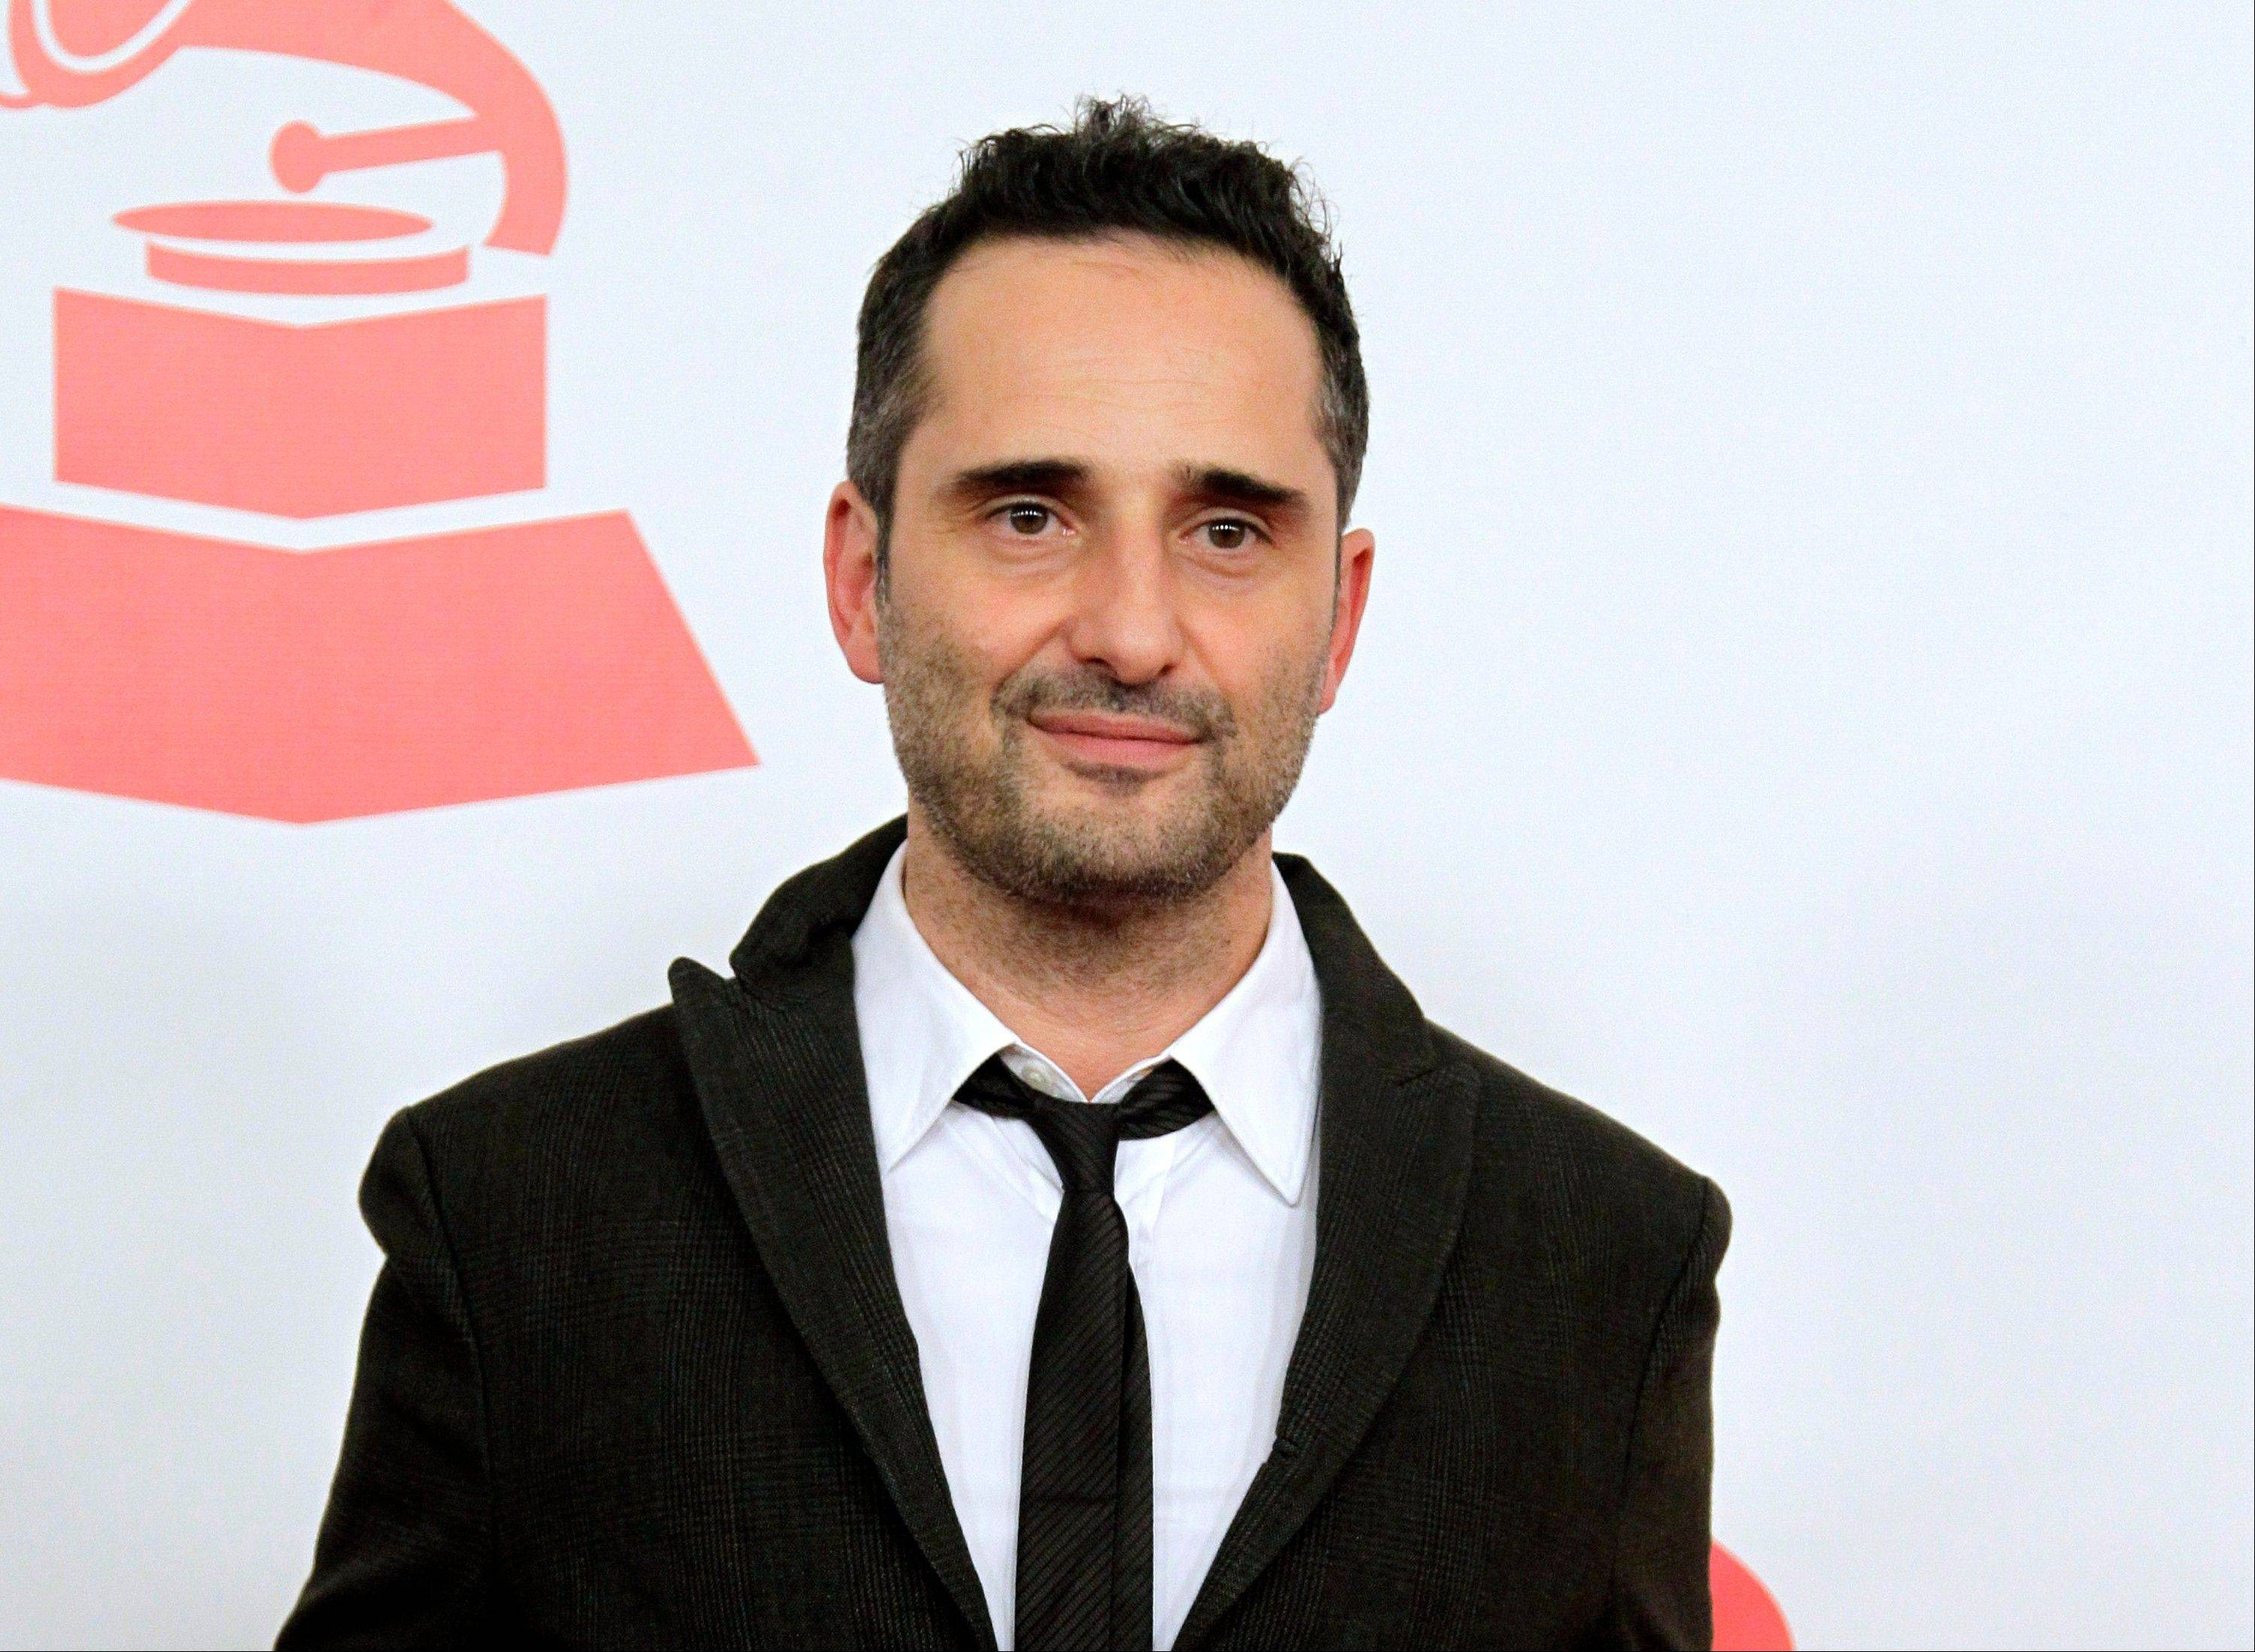 A mobile phone app musician Jorge Drexler created with Wake App designers recently debuted three new songs.